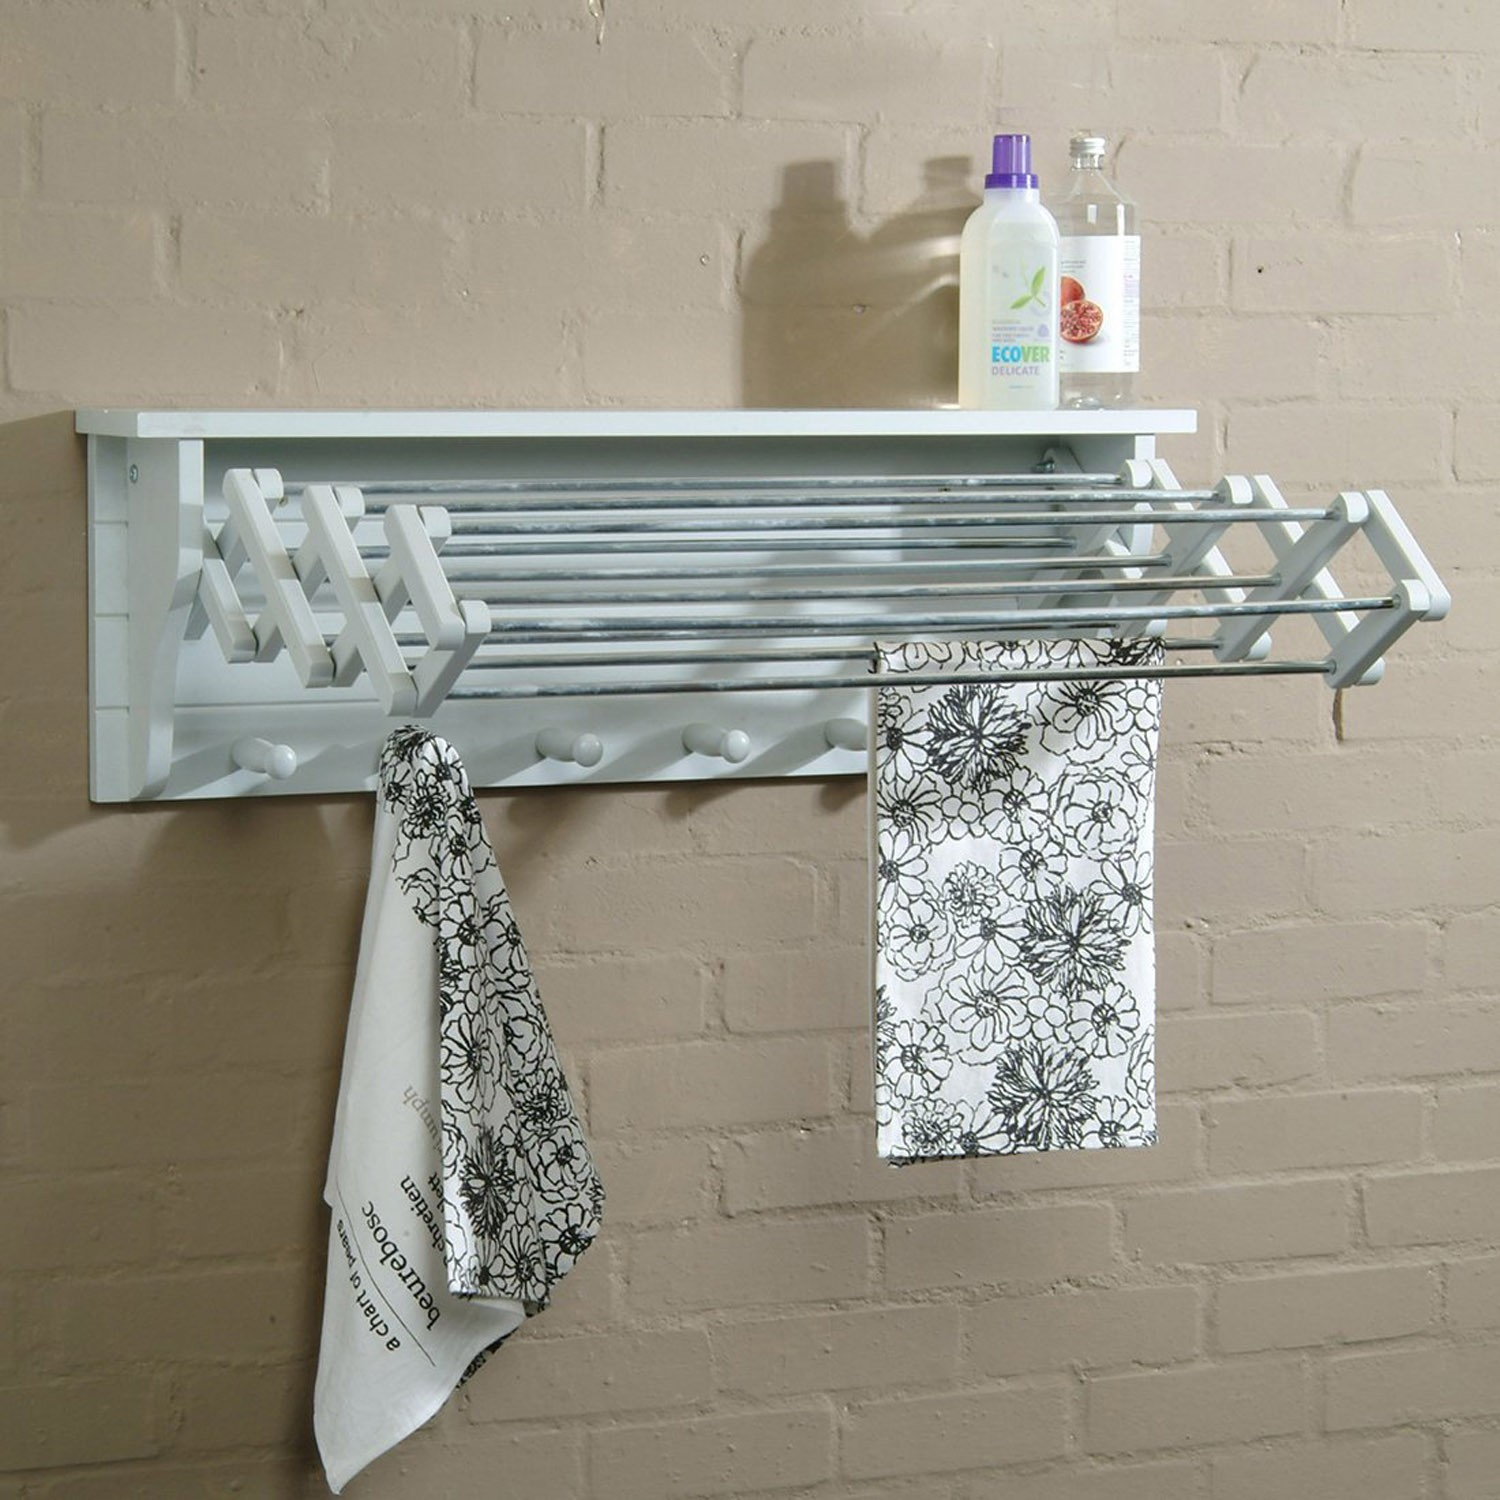 Extendable Timber Clothes Dryer Wall Mounted The Blue Door